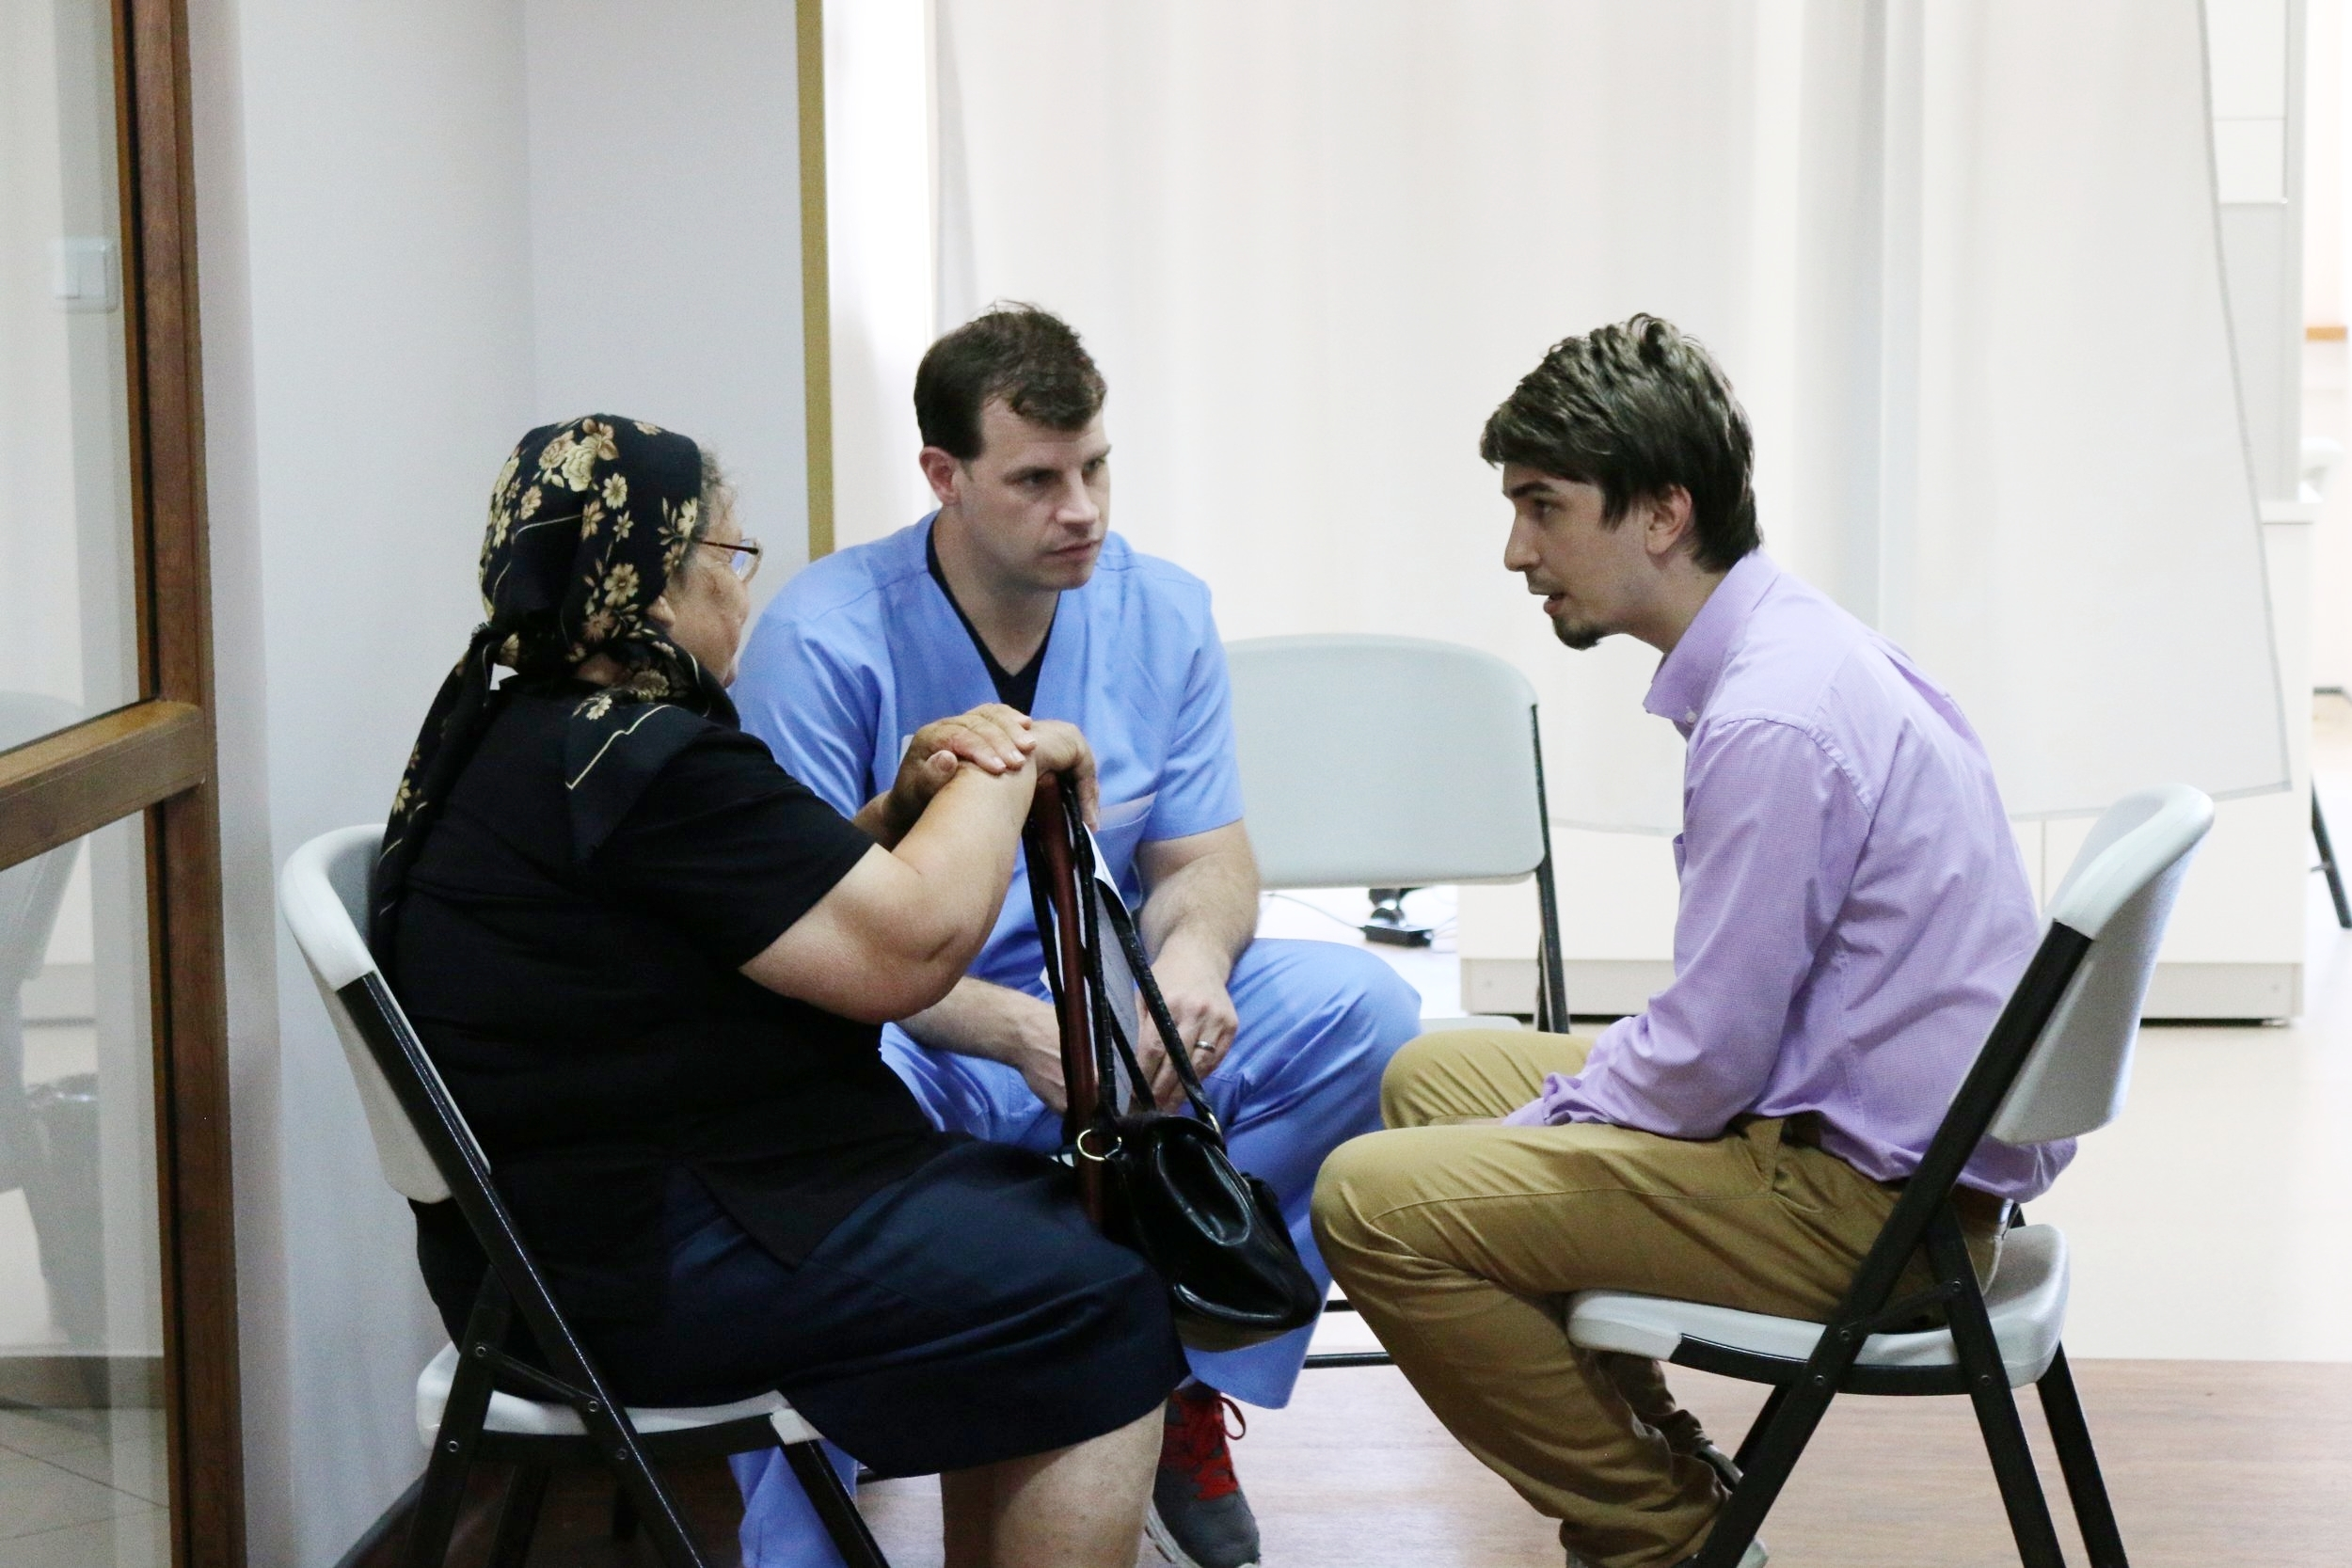 Lorne Book and Pastor Ioshua sharing the Gospel with Romanian patient in the Diaconia Medical Center waiting area.